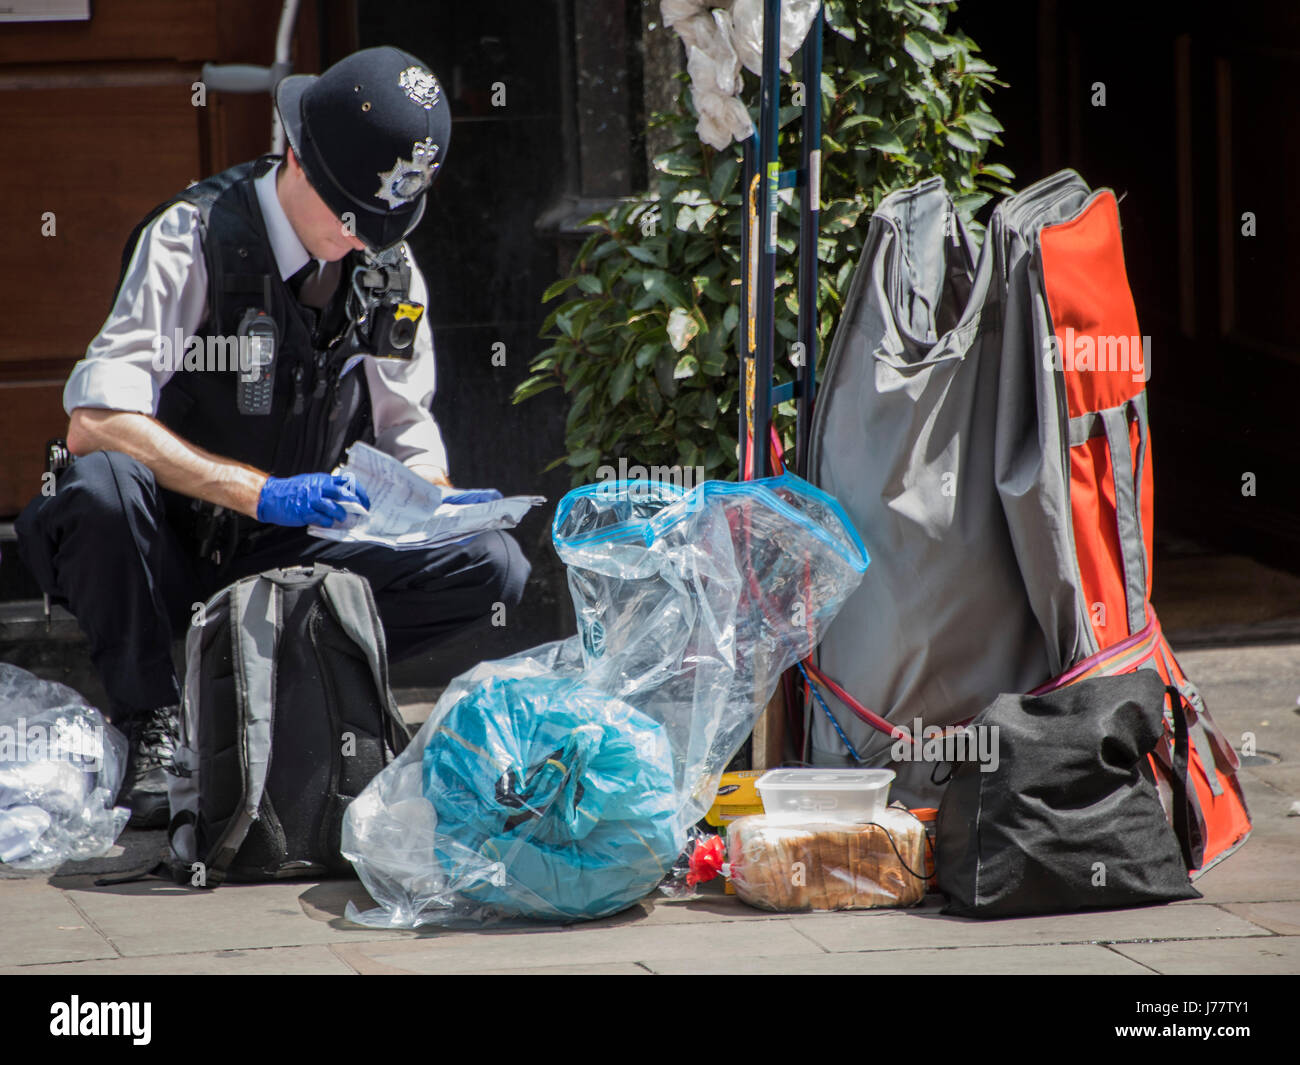 London, UK. 24th May, 2017.  An angry black homeless man is cuffed and his belongings searched - Armed police seal - Stock Image